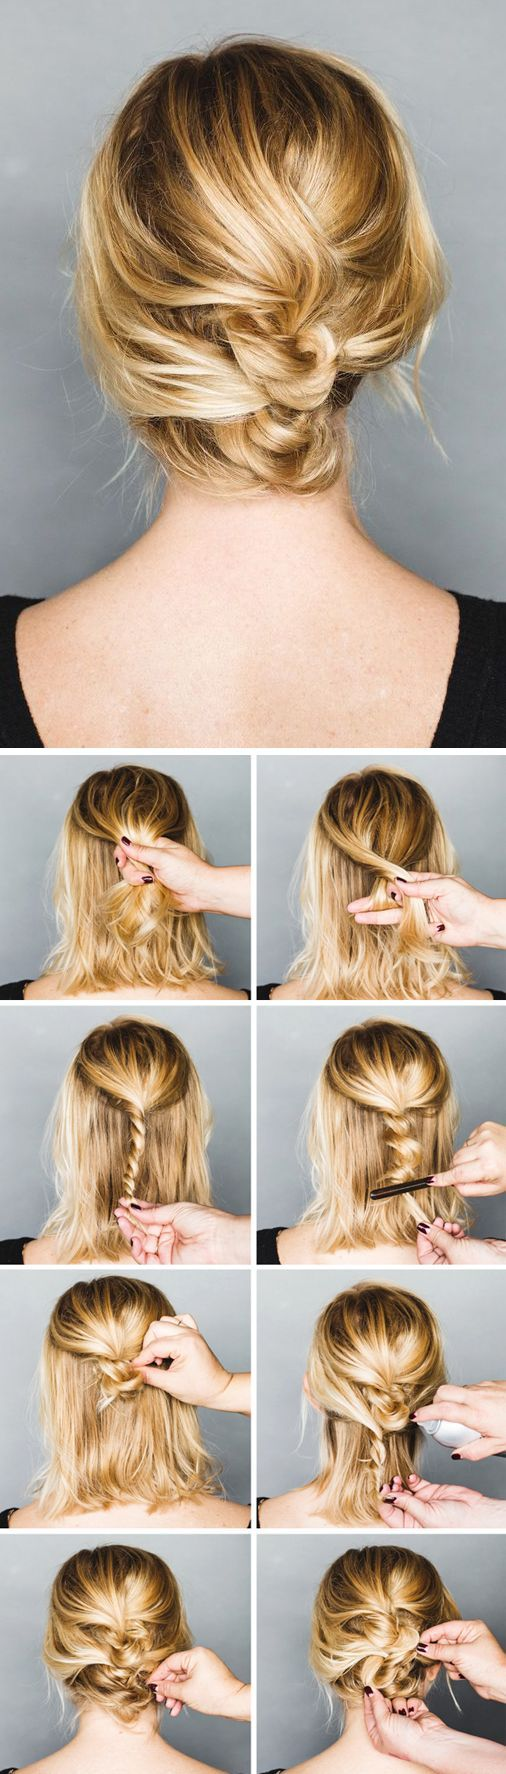 Astounding 1000 Ideas About Short Hair Tutorials On Pinterest Long Hair Short Hairstyles Gunalazisus